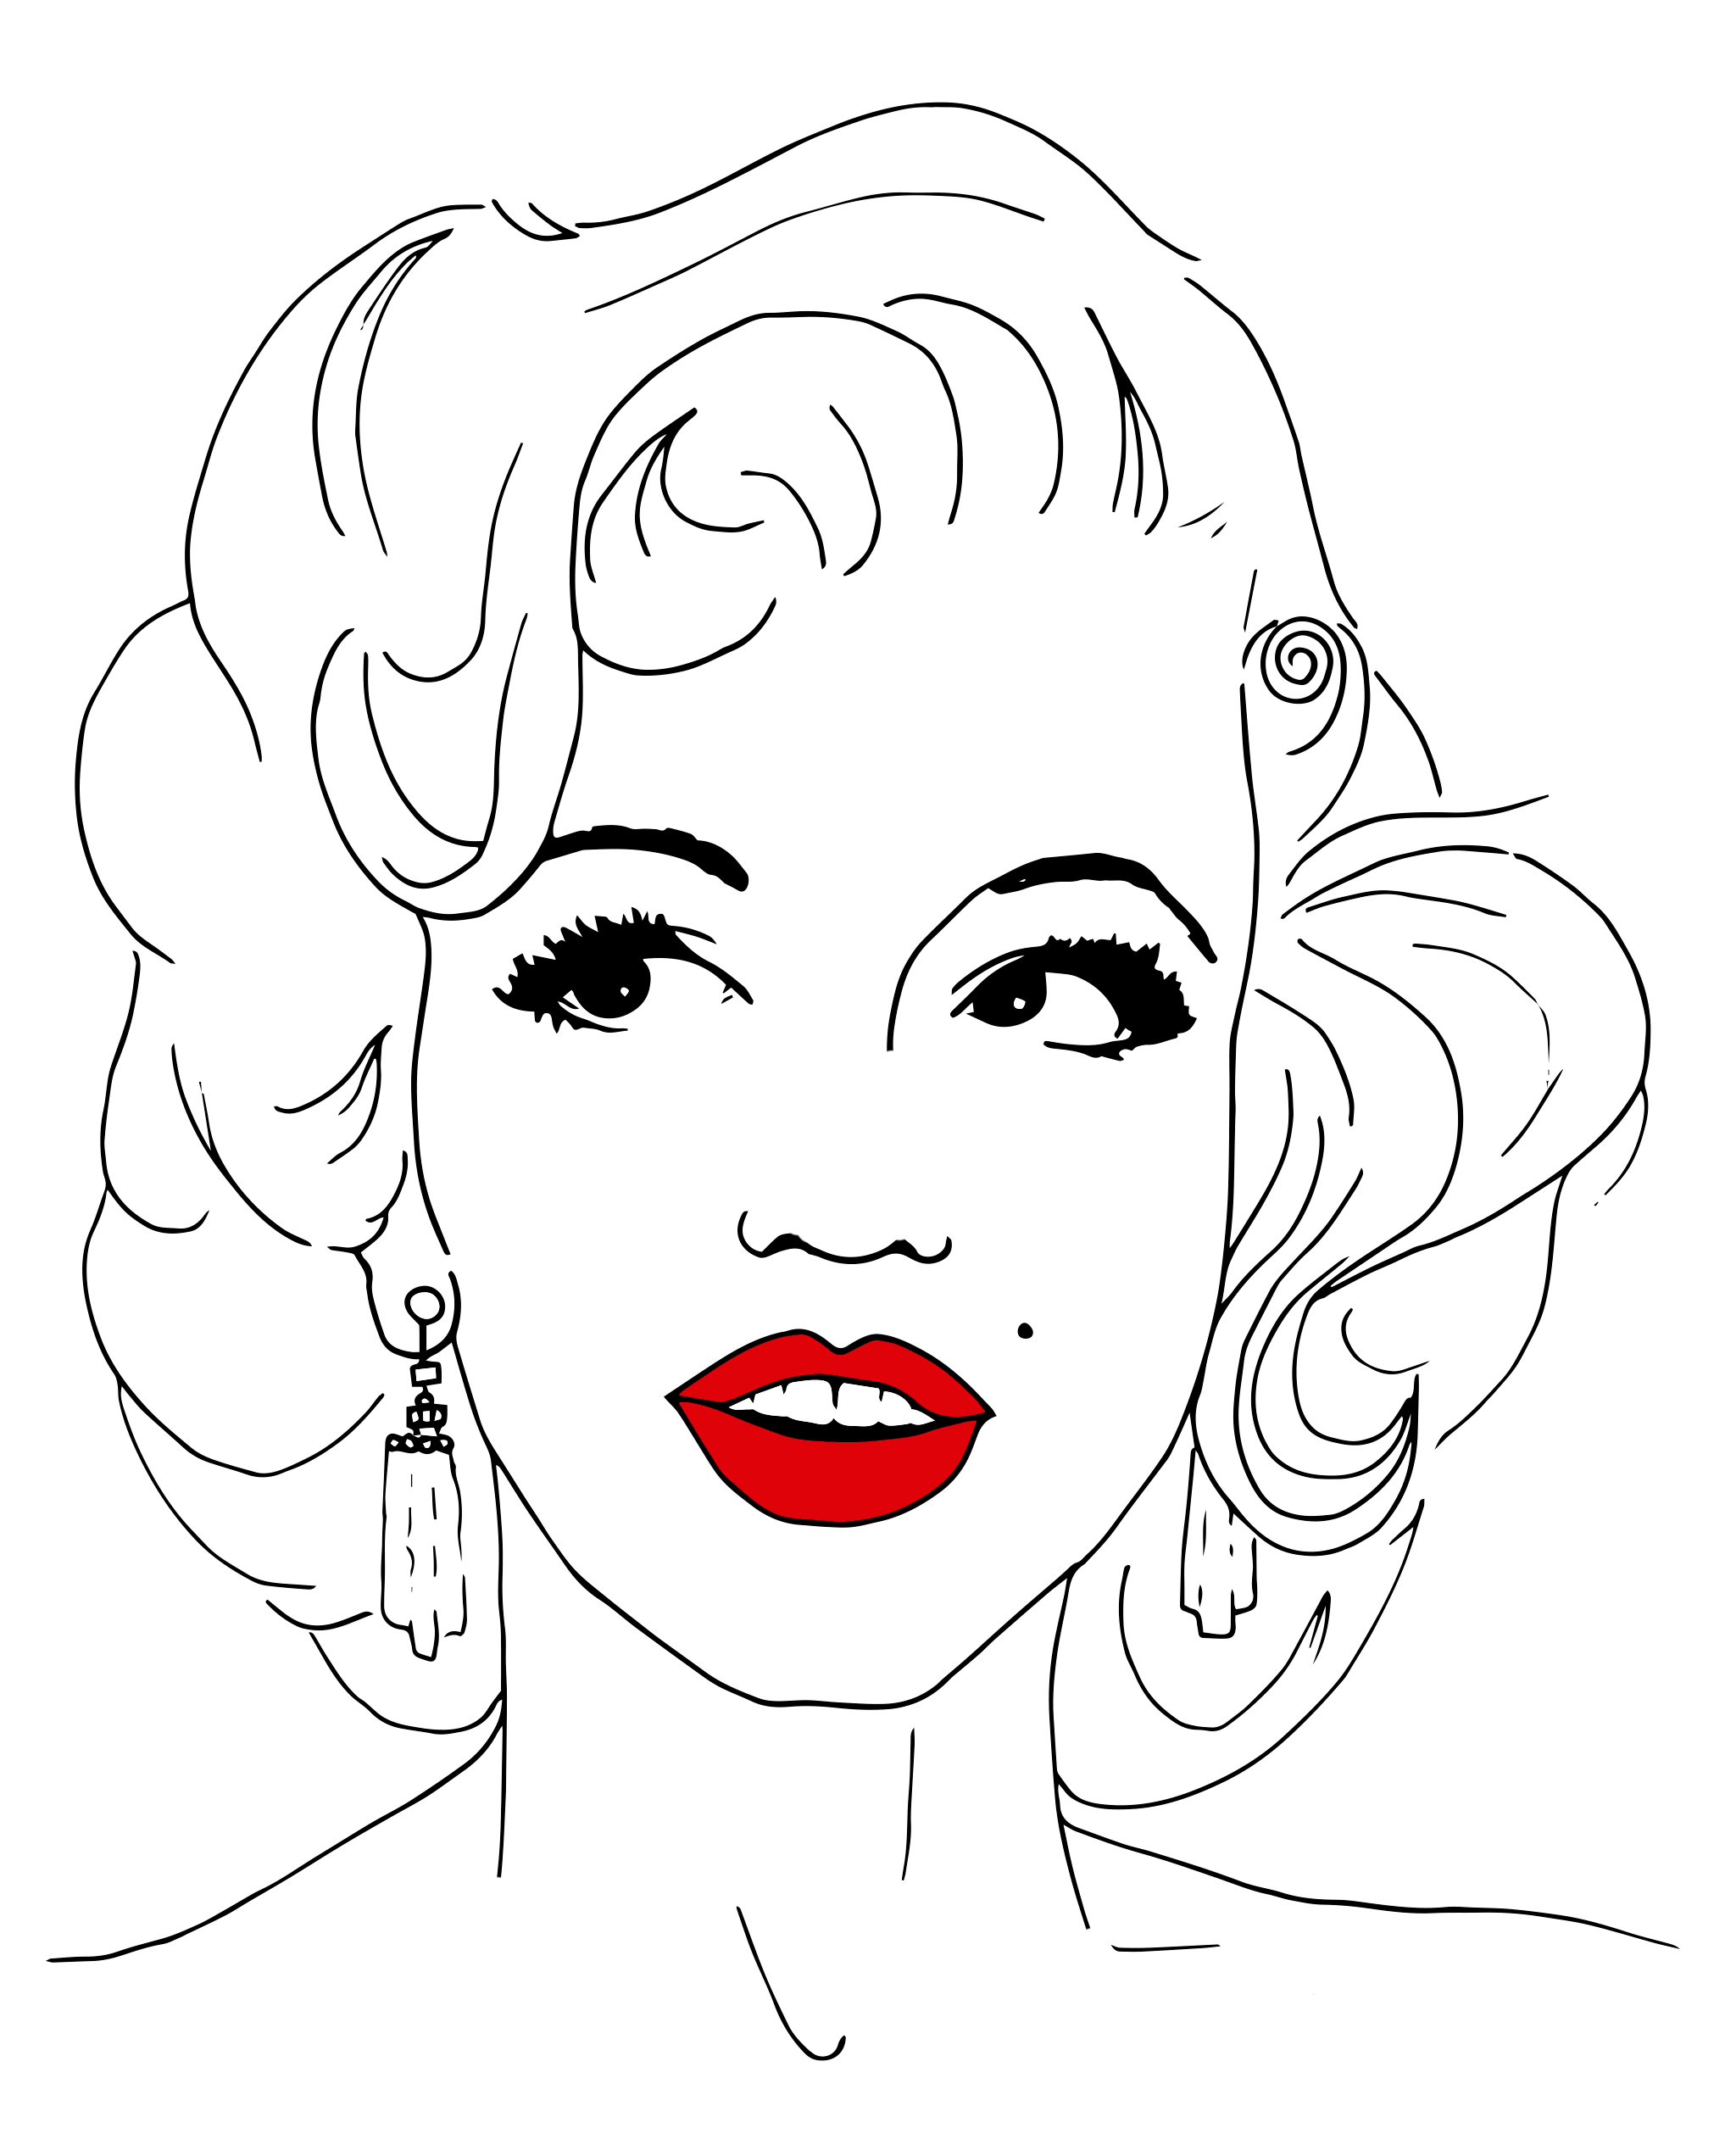 It is an image of Nerdy Marilyn Monroe Drawing Outline